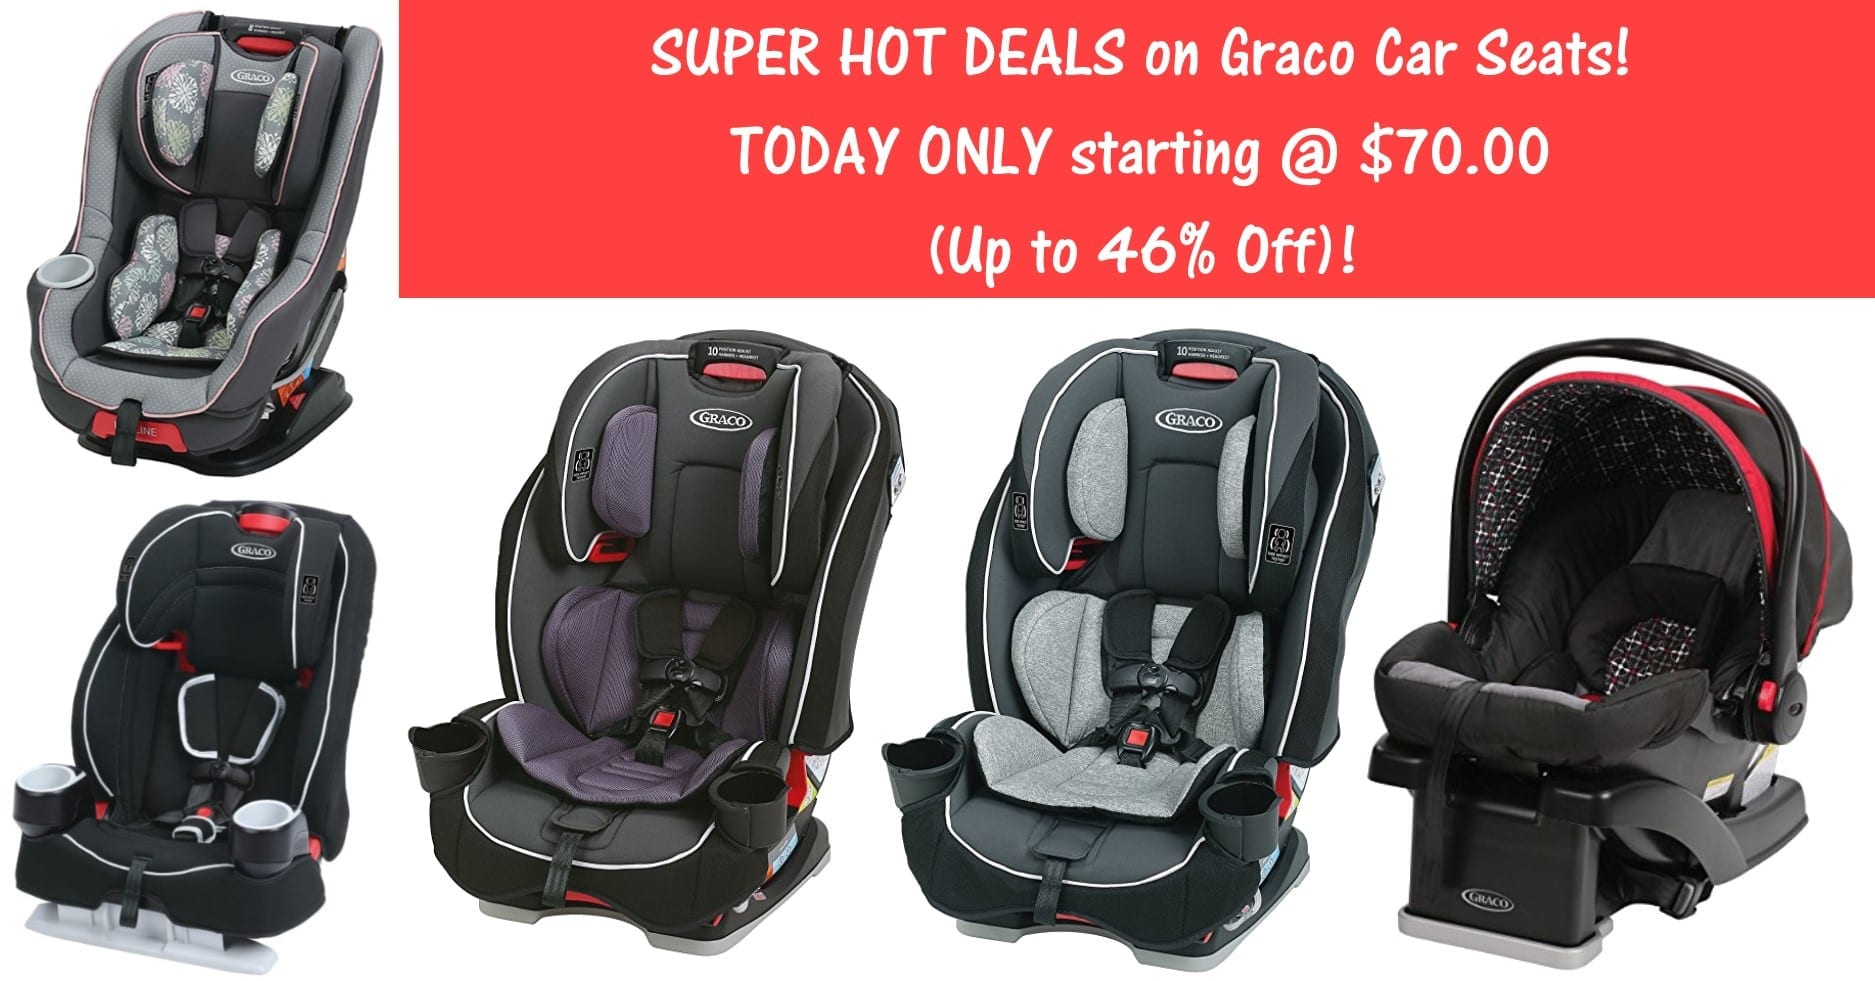 Excellent Graco Car Seat Deals Save Up To Today Graco Slimfit Vs Milestone Graco Slimfit Walmart baby Graco Slim Fit